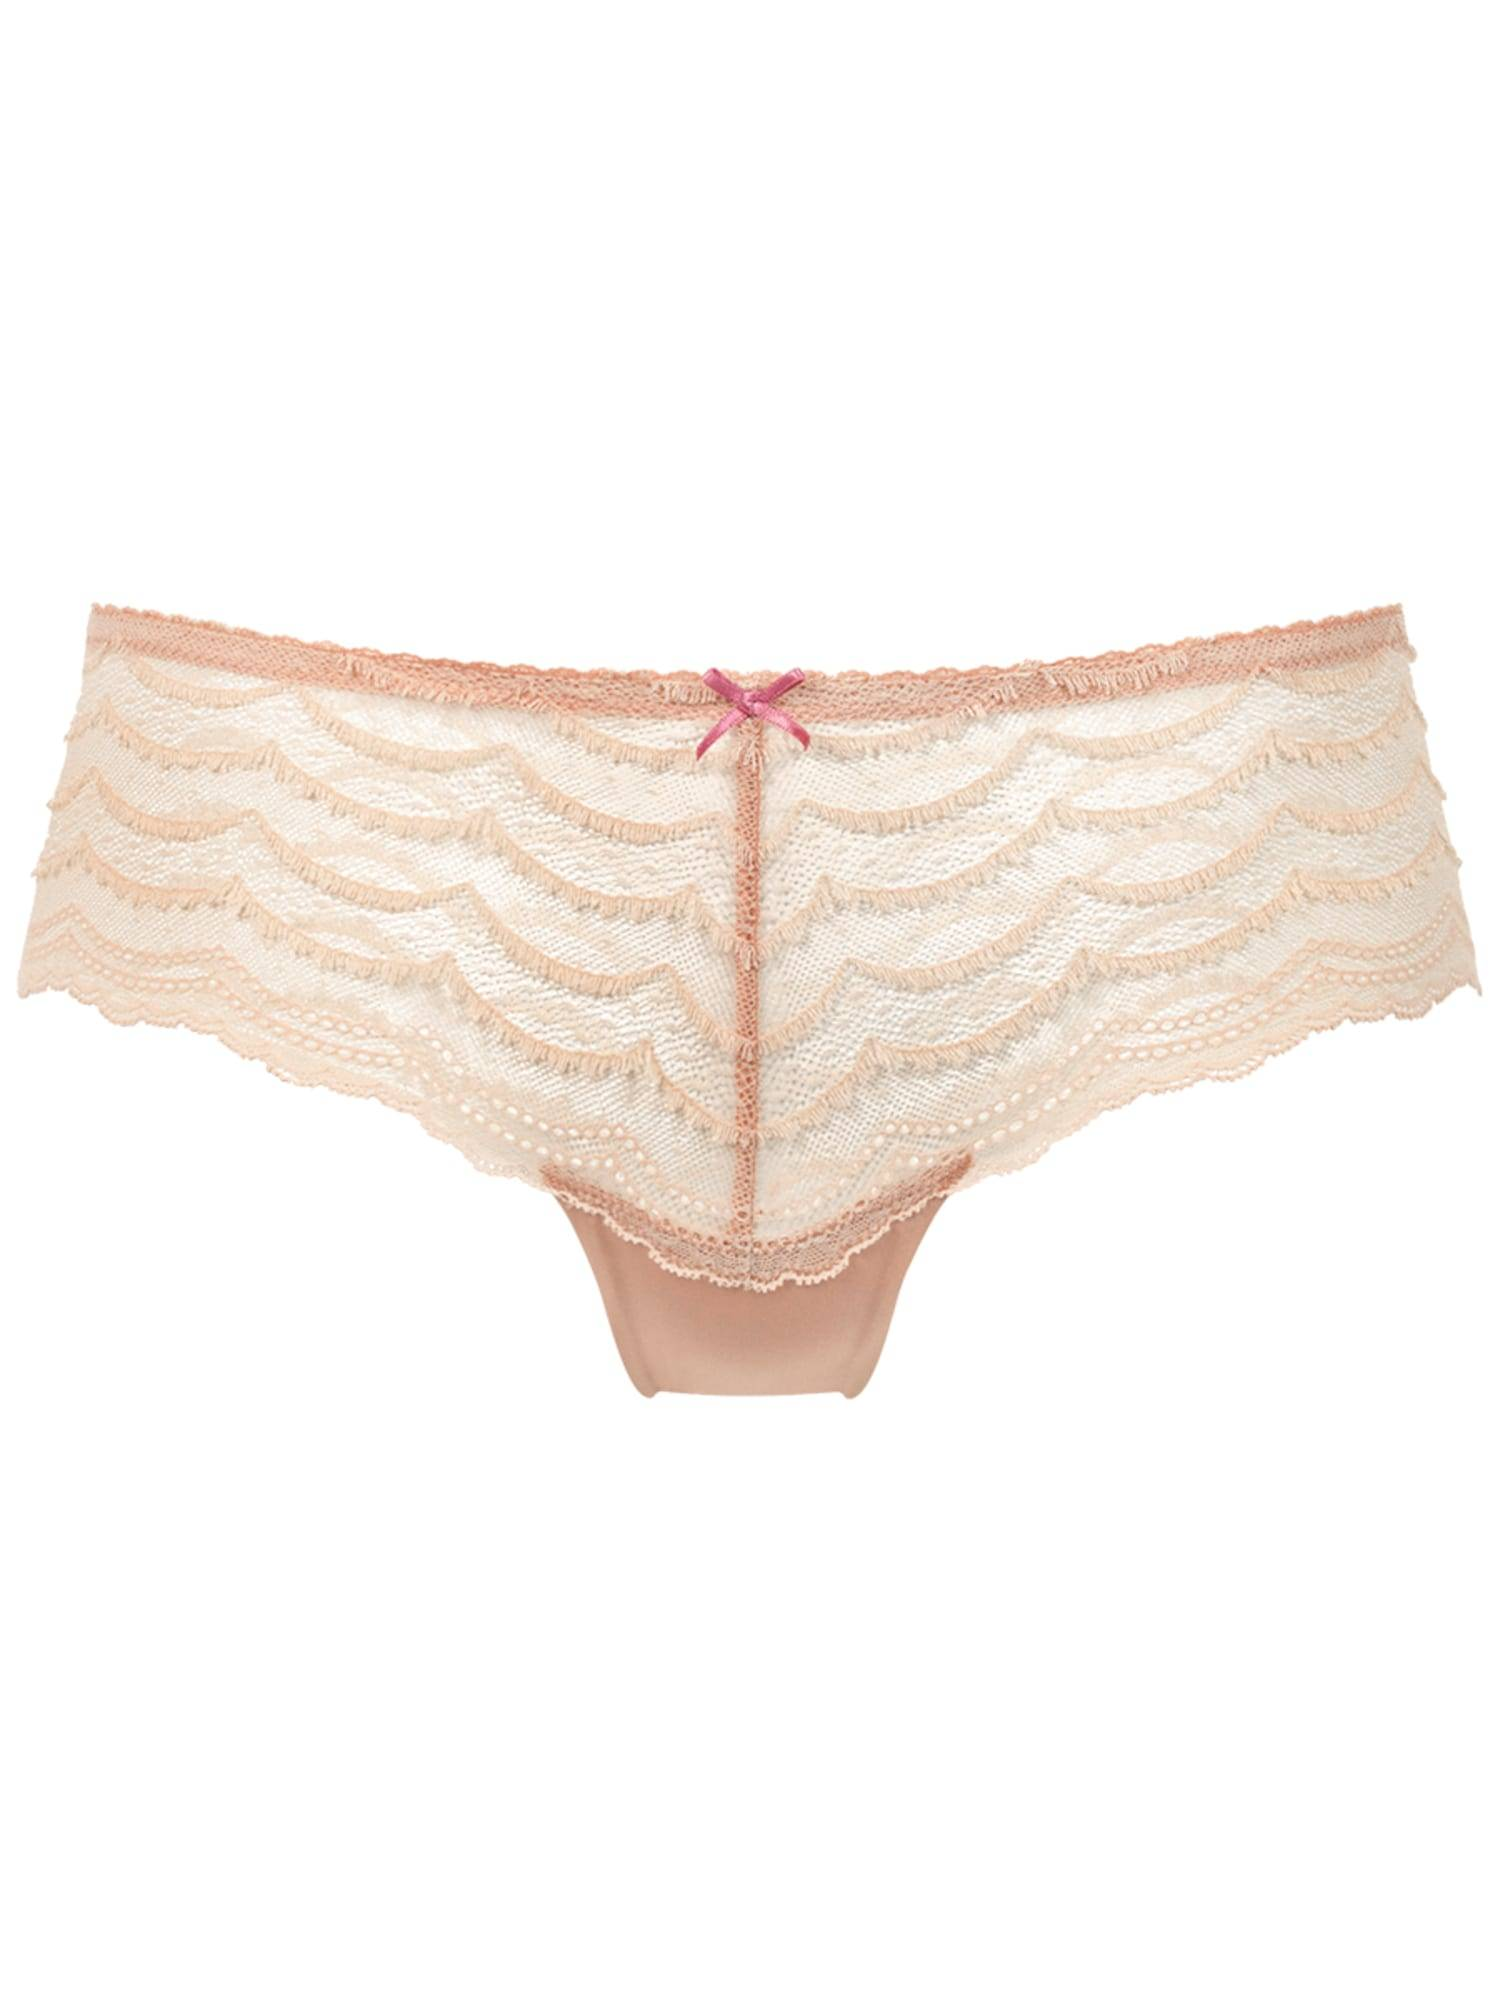 PALMERS Culotte 'Romantic Dream Panty'  - Orange - Taille: XS - female